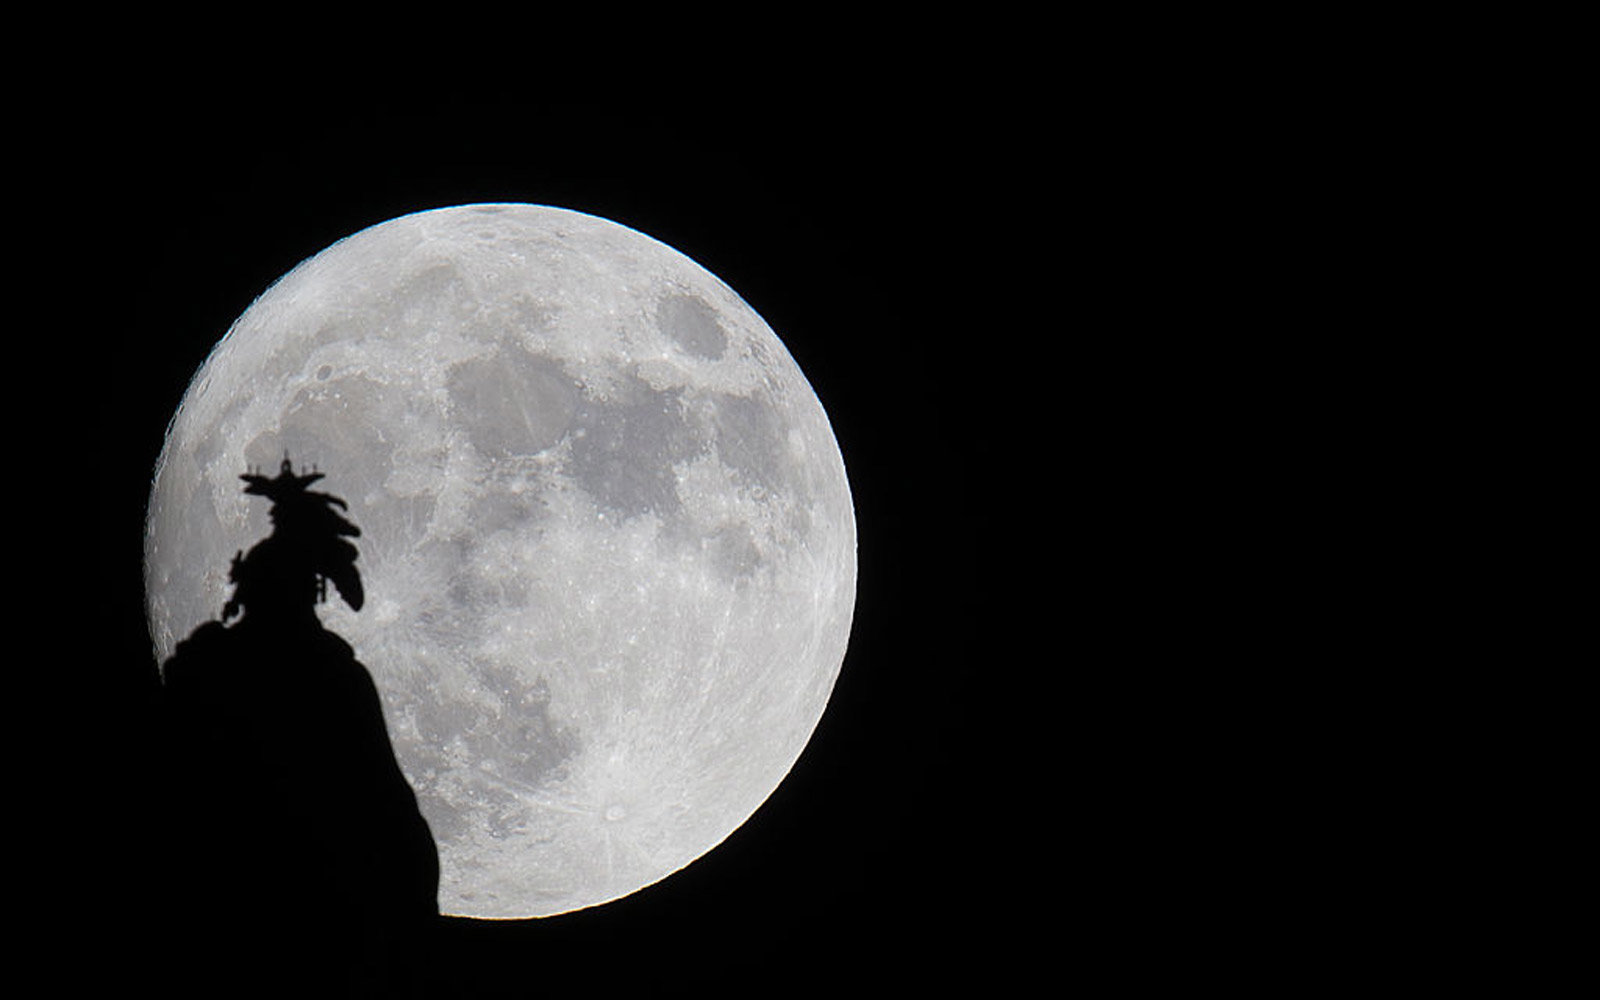 A supermoon rises over the Statue of Freedom on the Capitol dome in Washington, DC November 13, 2016.